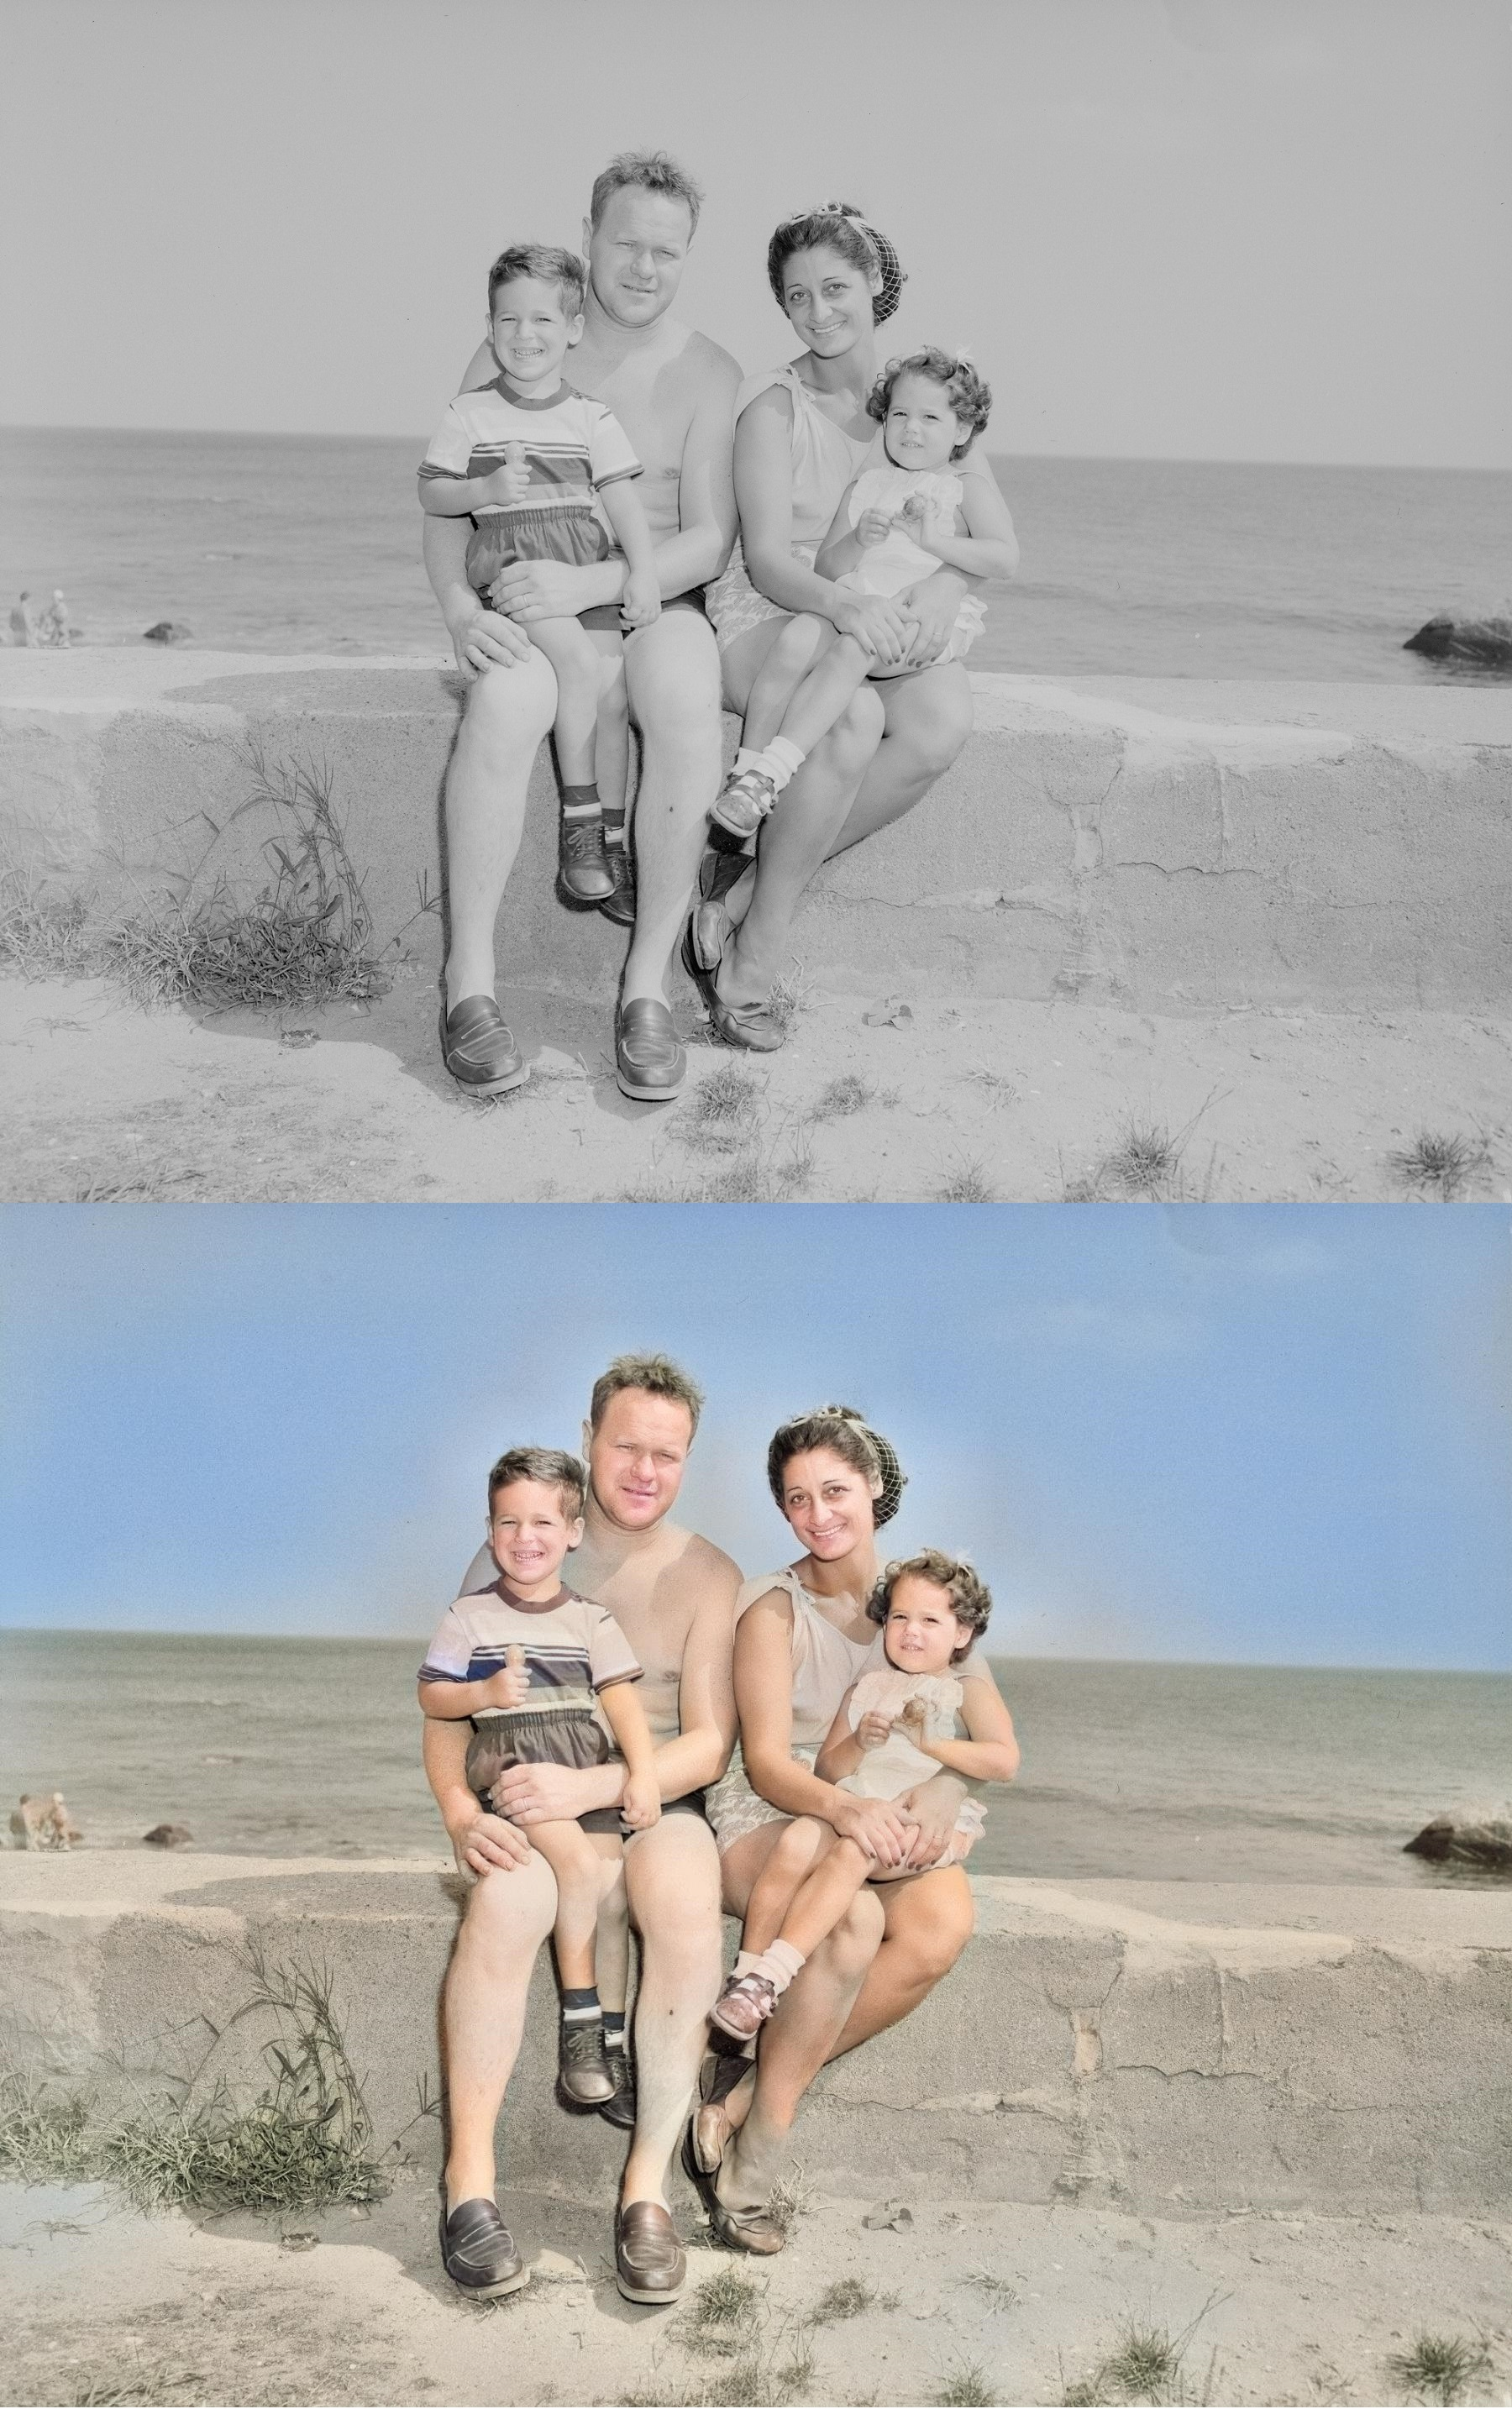 Color Restore, Colorize B&W Photos and Images FAST. FREE SAMPLE BEFORE YOU ORDER TODAY!